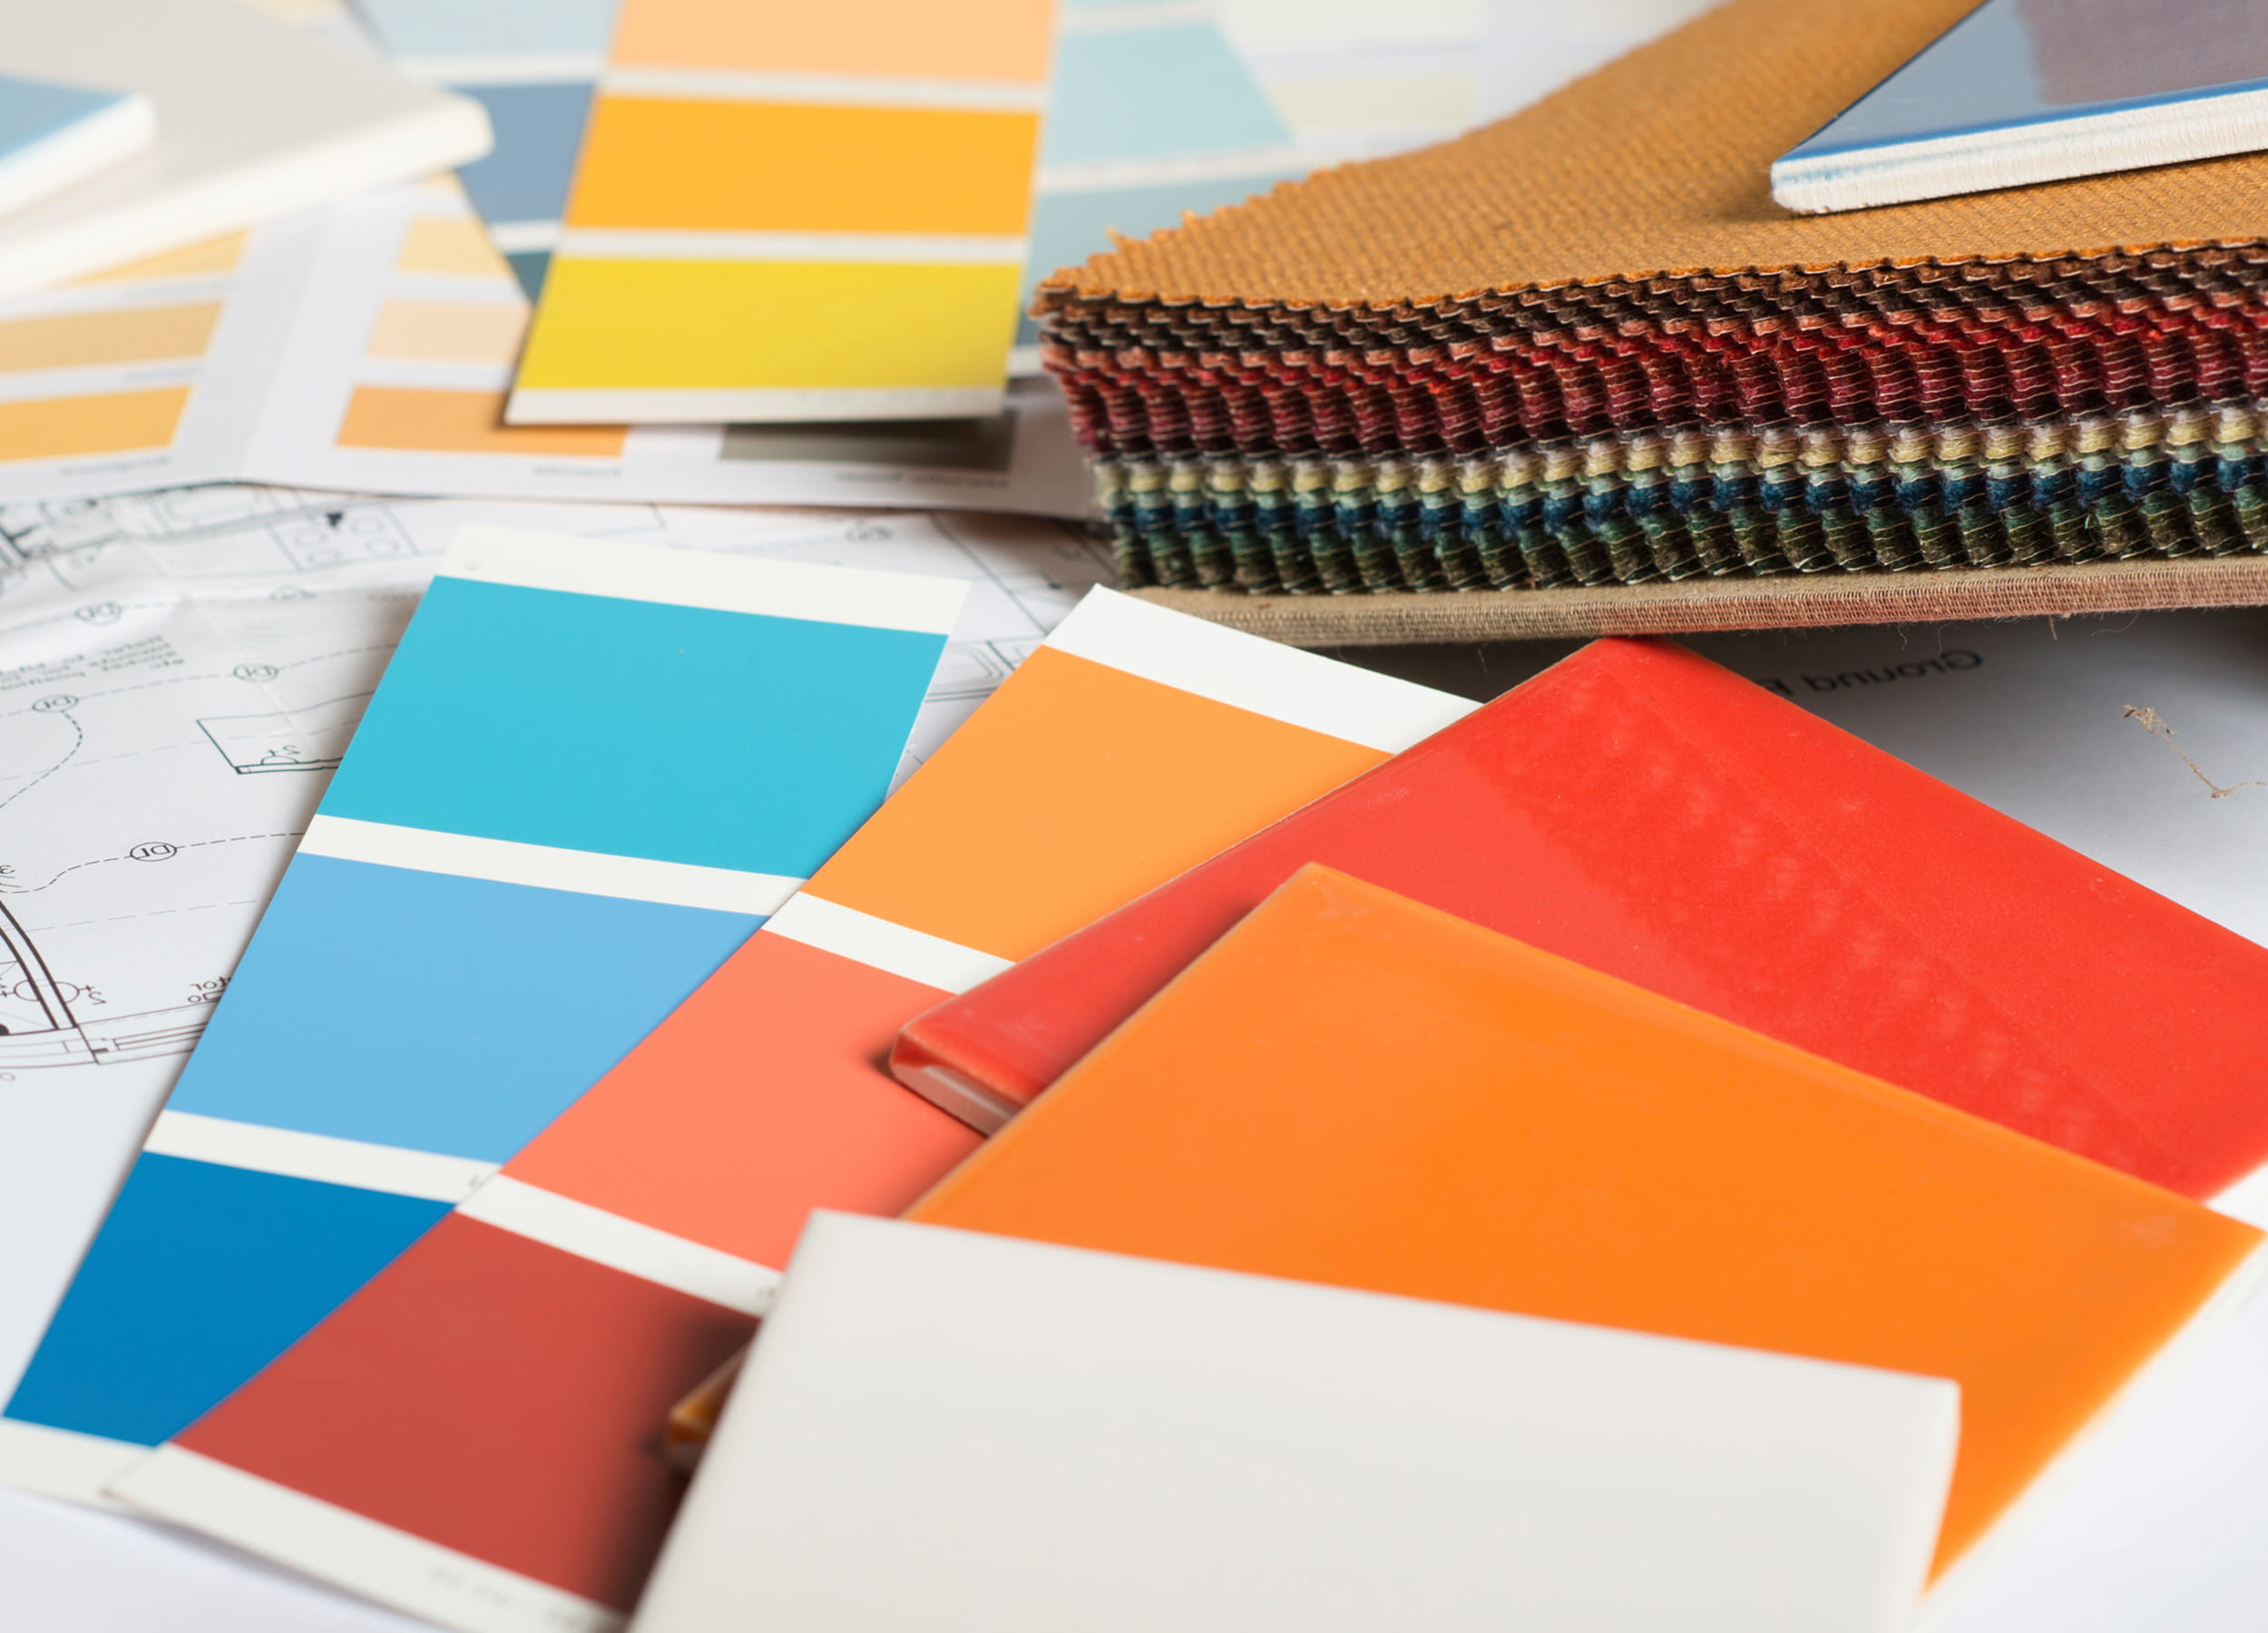 Interior decorating paint samples and tiles